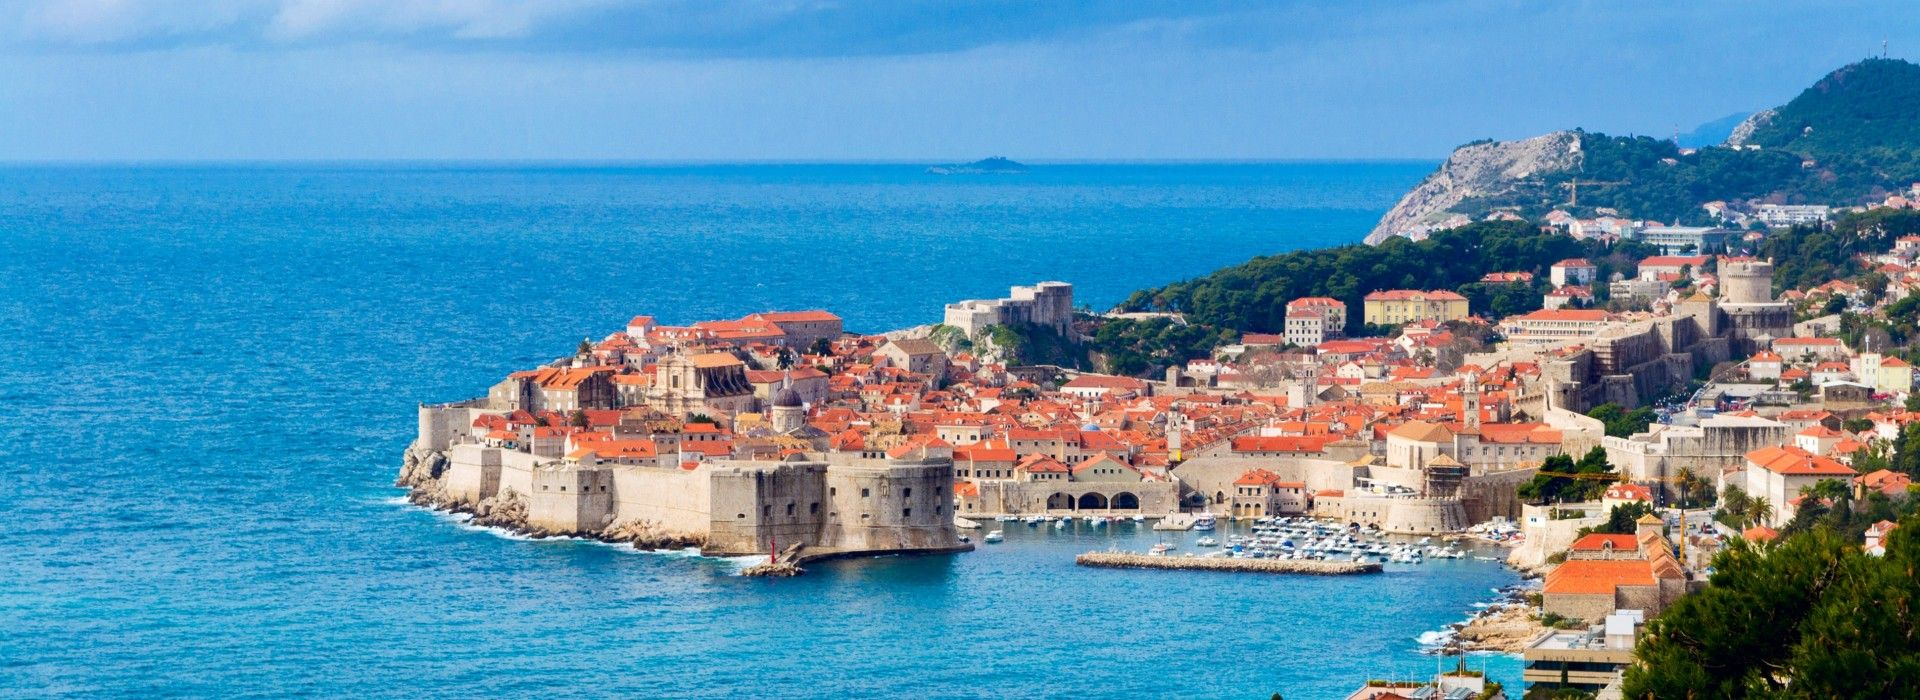 Sightseeing, attractions, culture and history Tours in Korcula Island